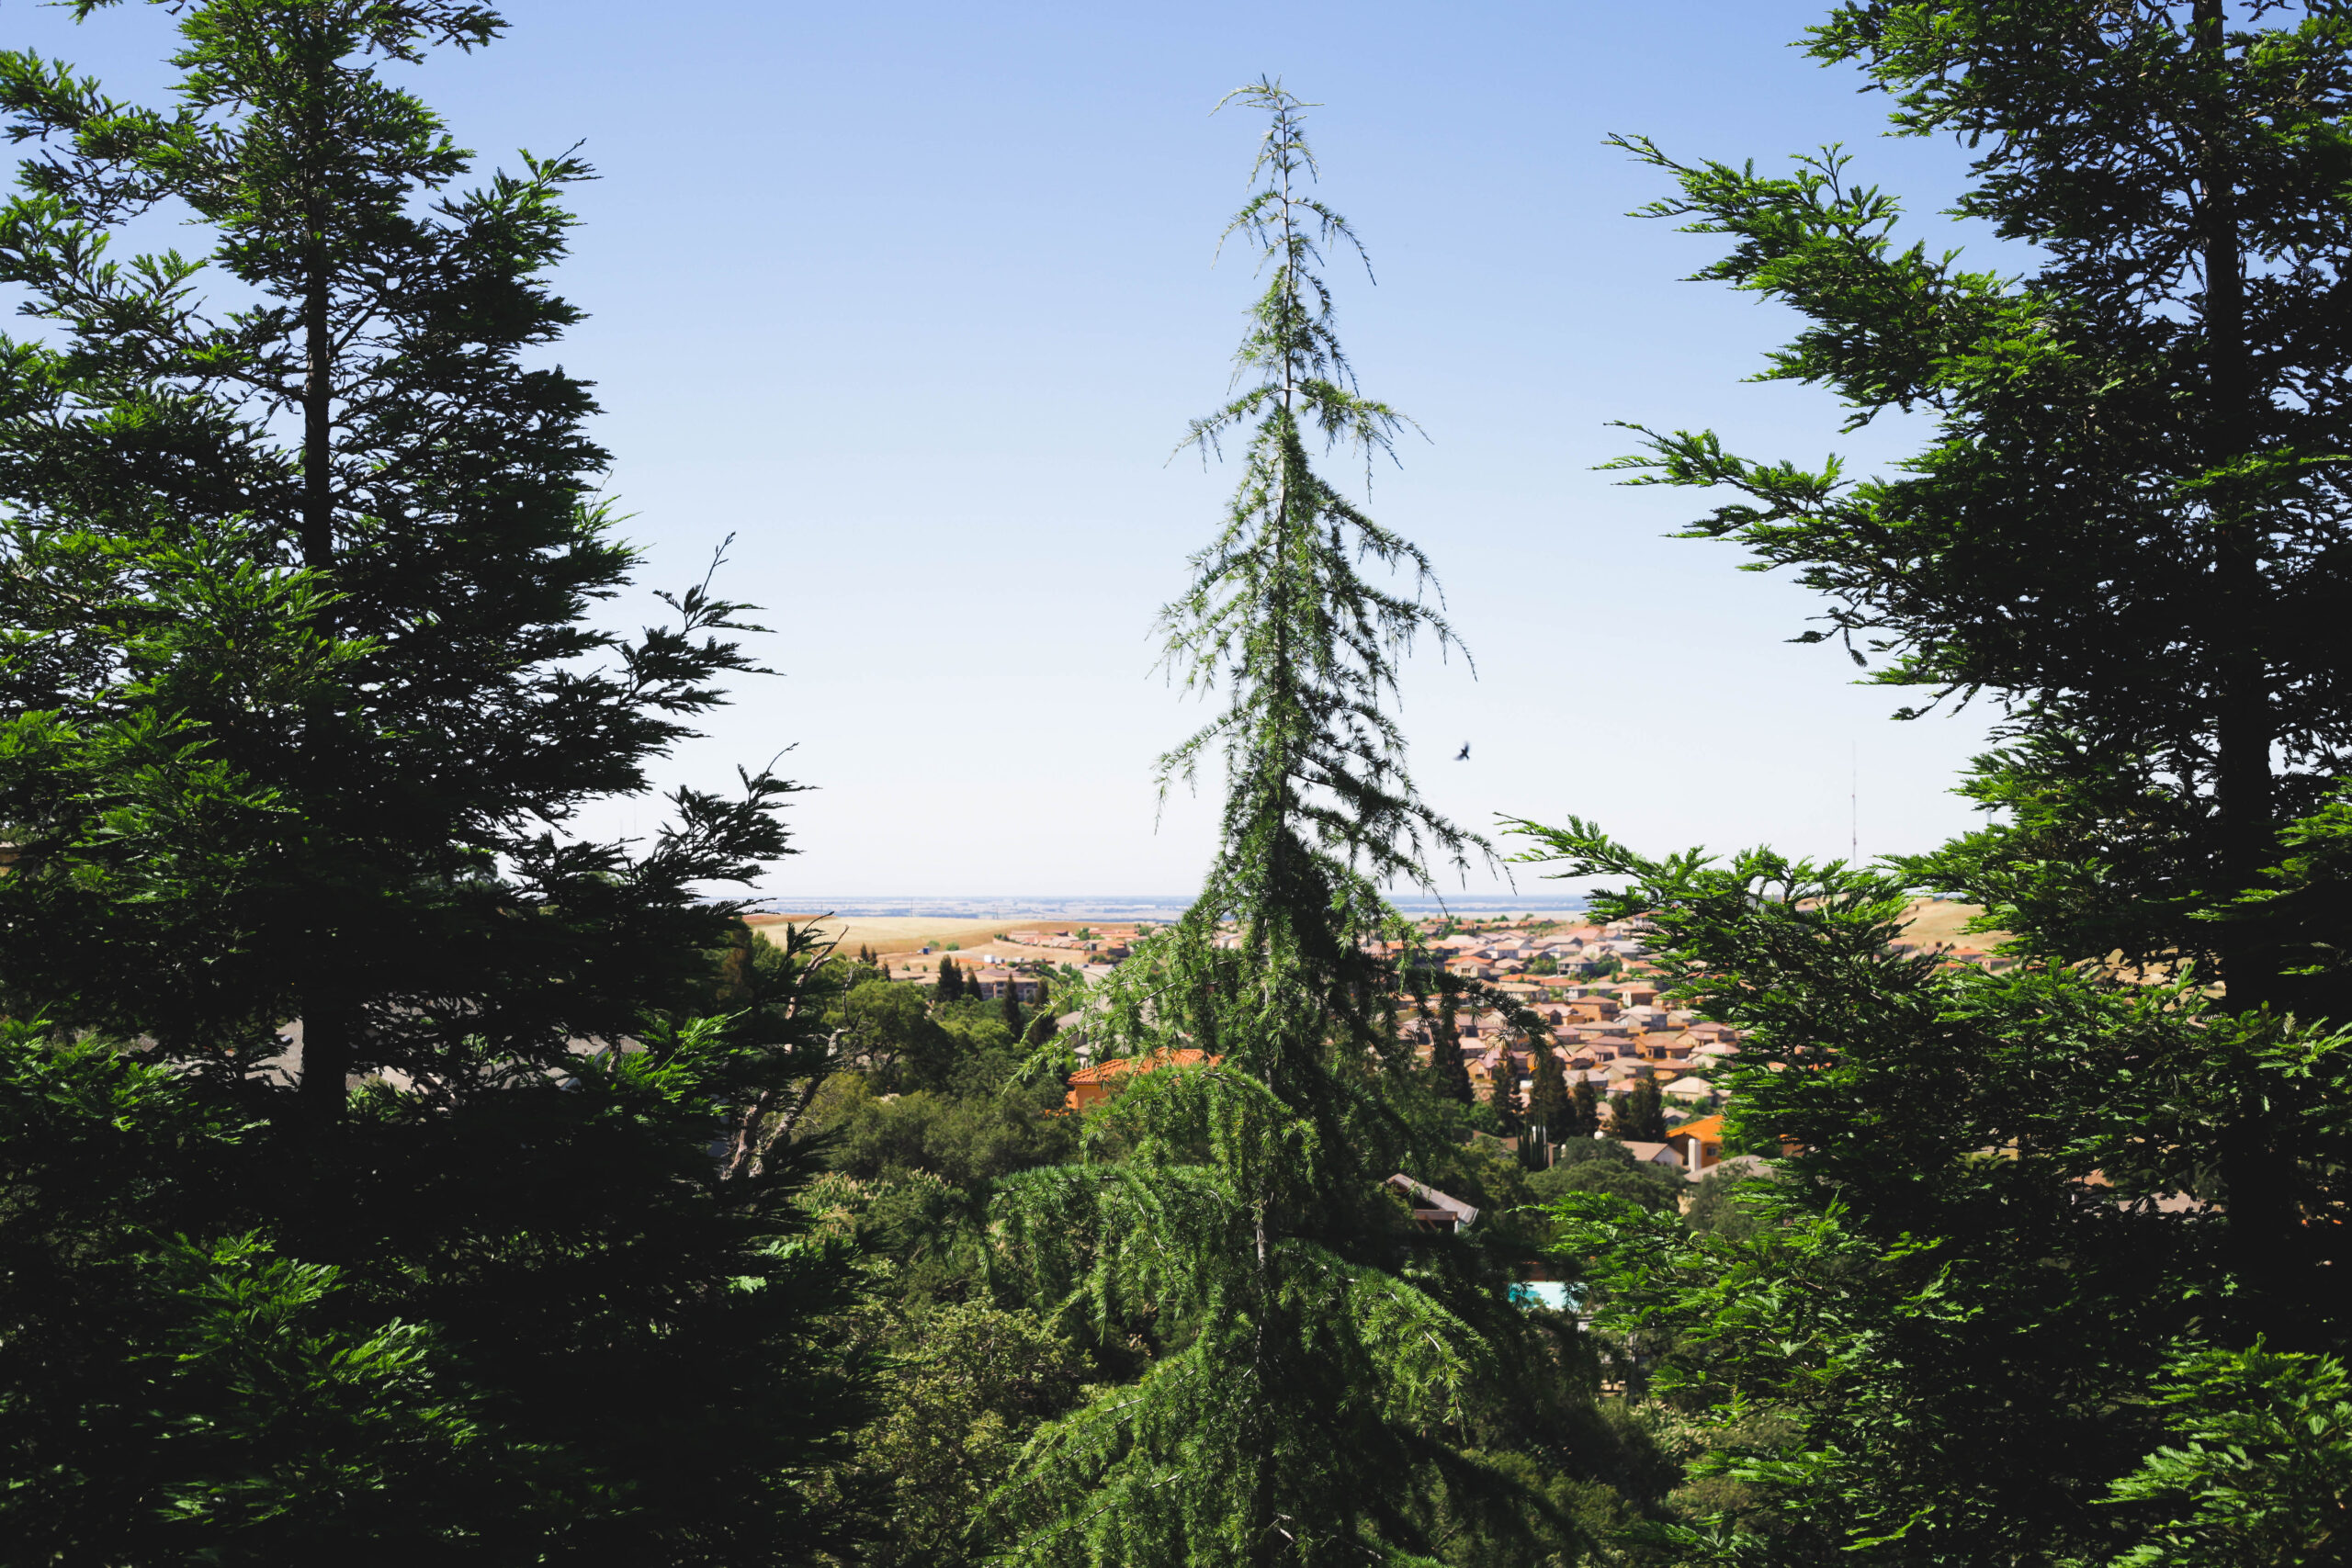 this image shows emergency tree service in carlsbad california